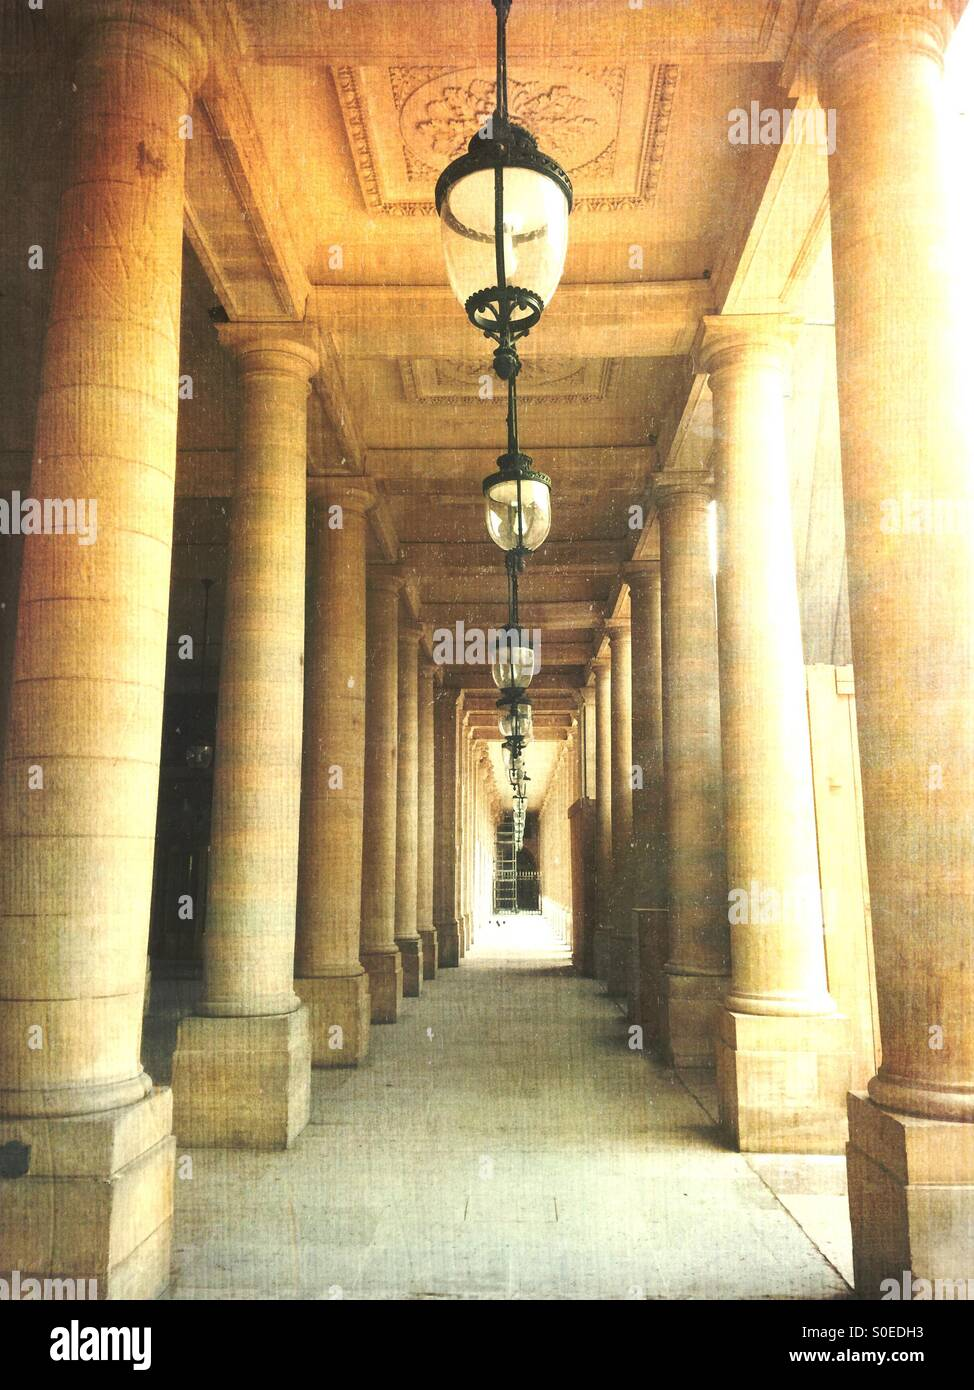 Beautiful classical columns and antique pendant ceiling lamps line the arcade of Valois Gallery at Palais-Royal. - Stock Image